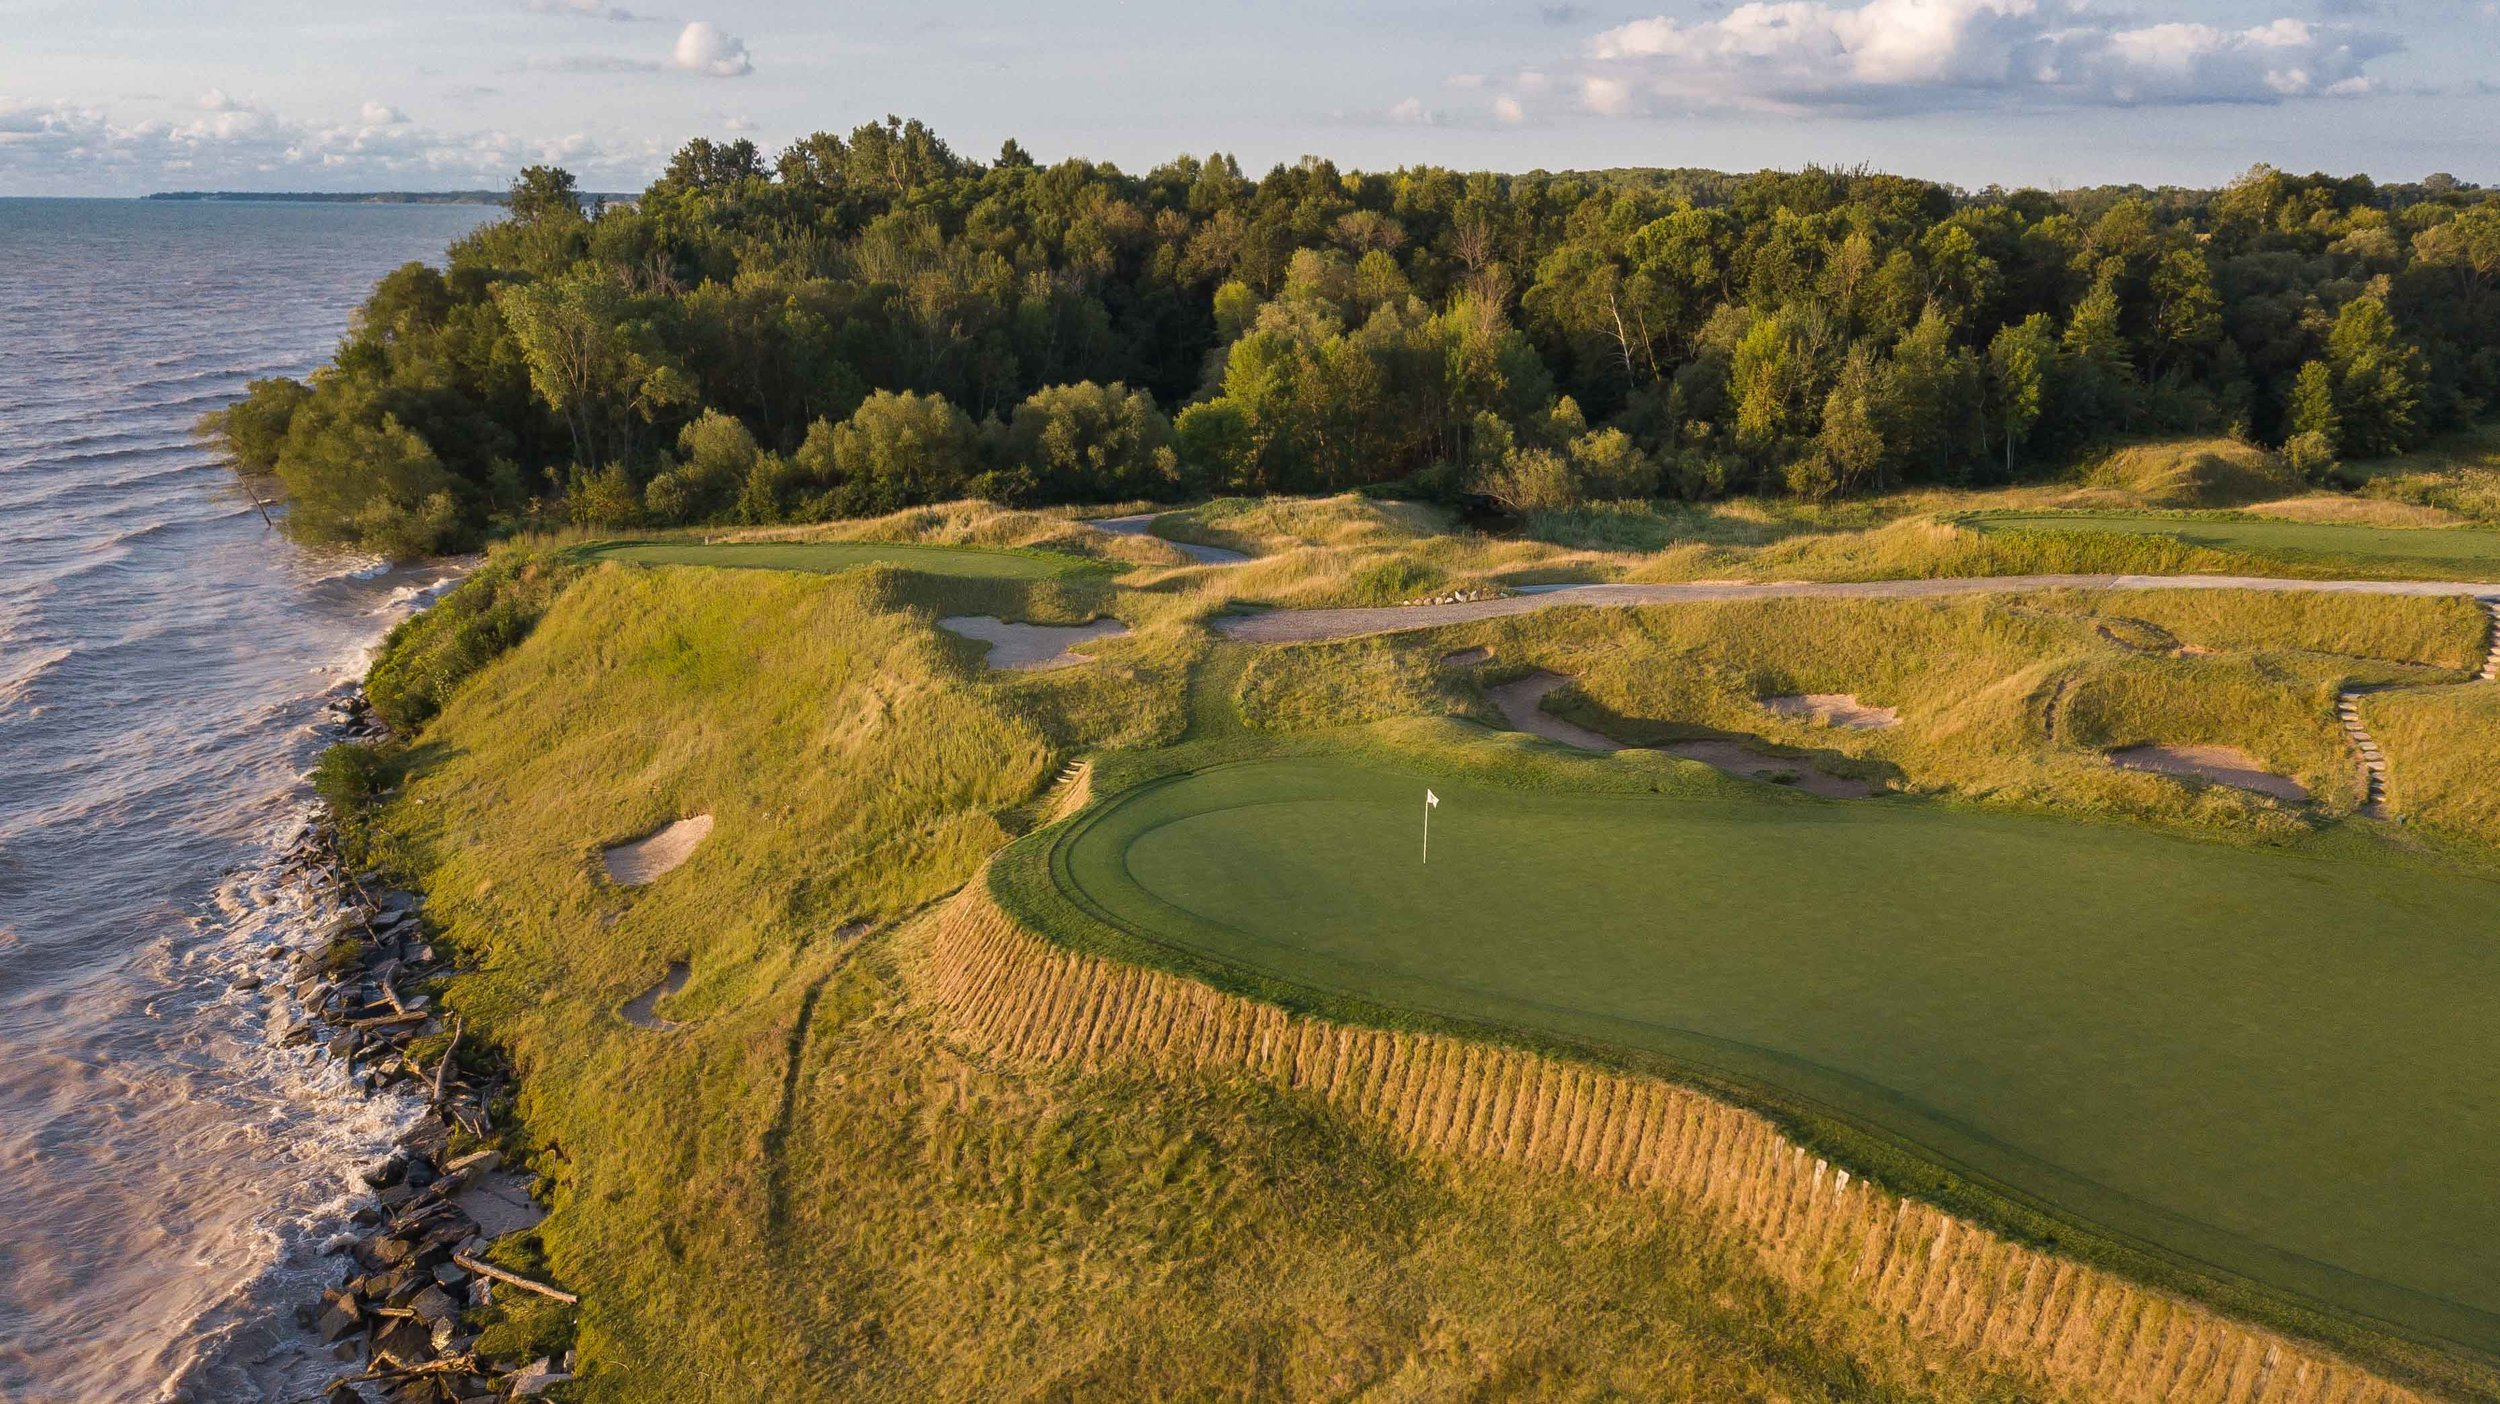 When the 17th hole plays into the wind, it is easily one of the most difficult holes on the golf course.